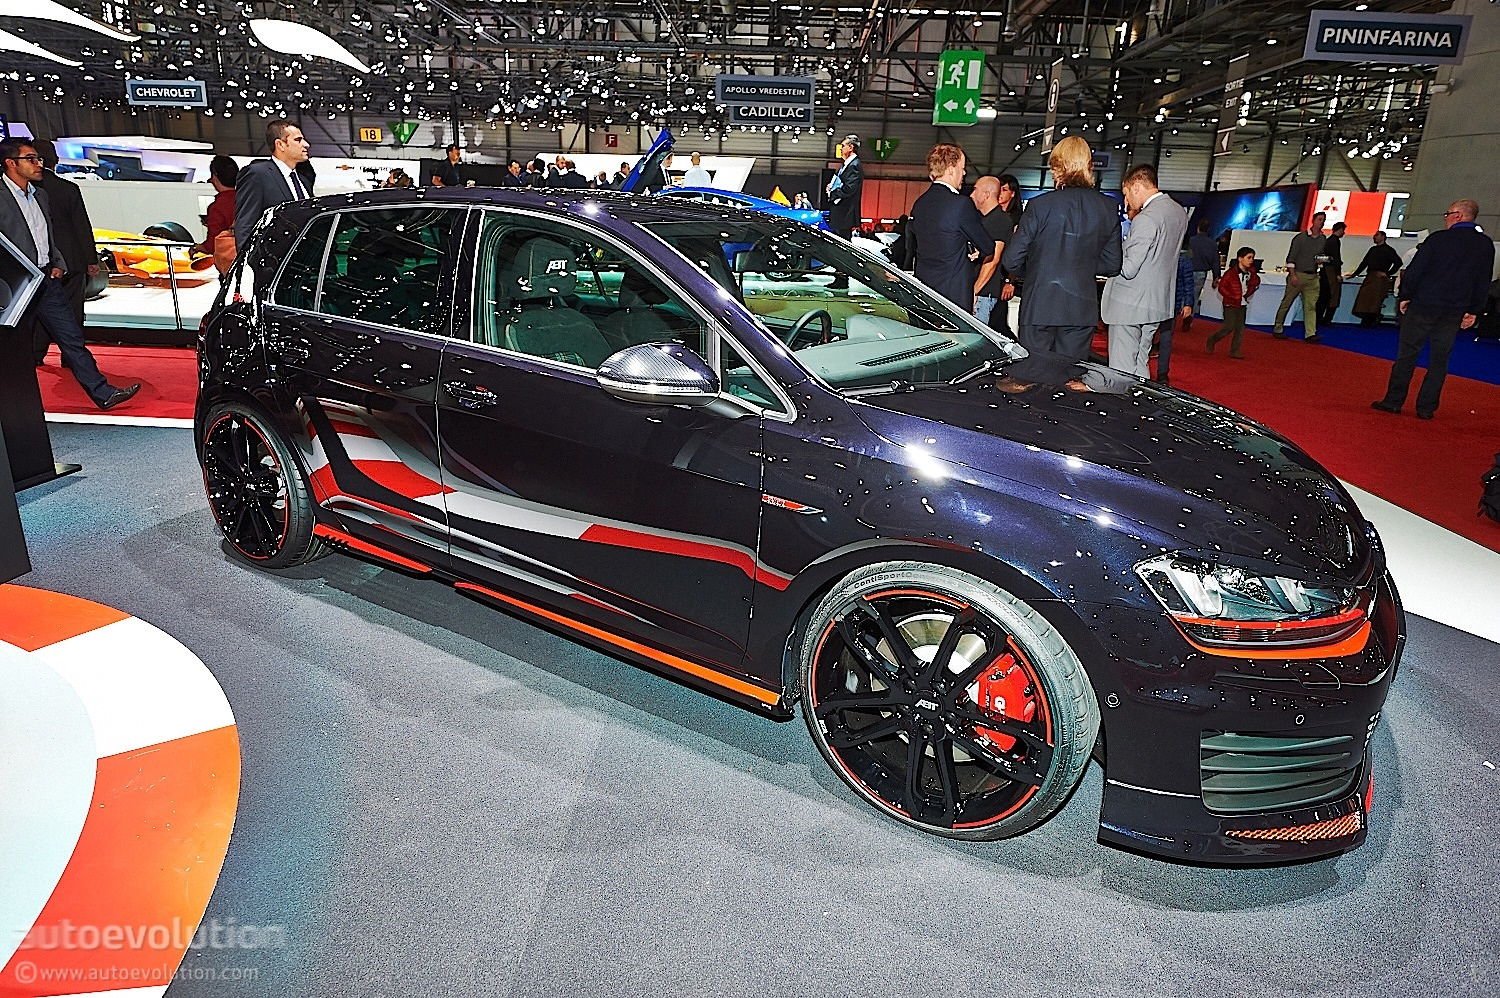 abt volkswagen golf gti dark edition in geneva live photos autoevolution. Black Bedroom Furniture Sets. Home Design Ideas